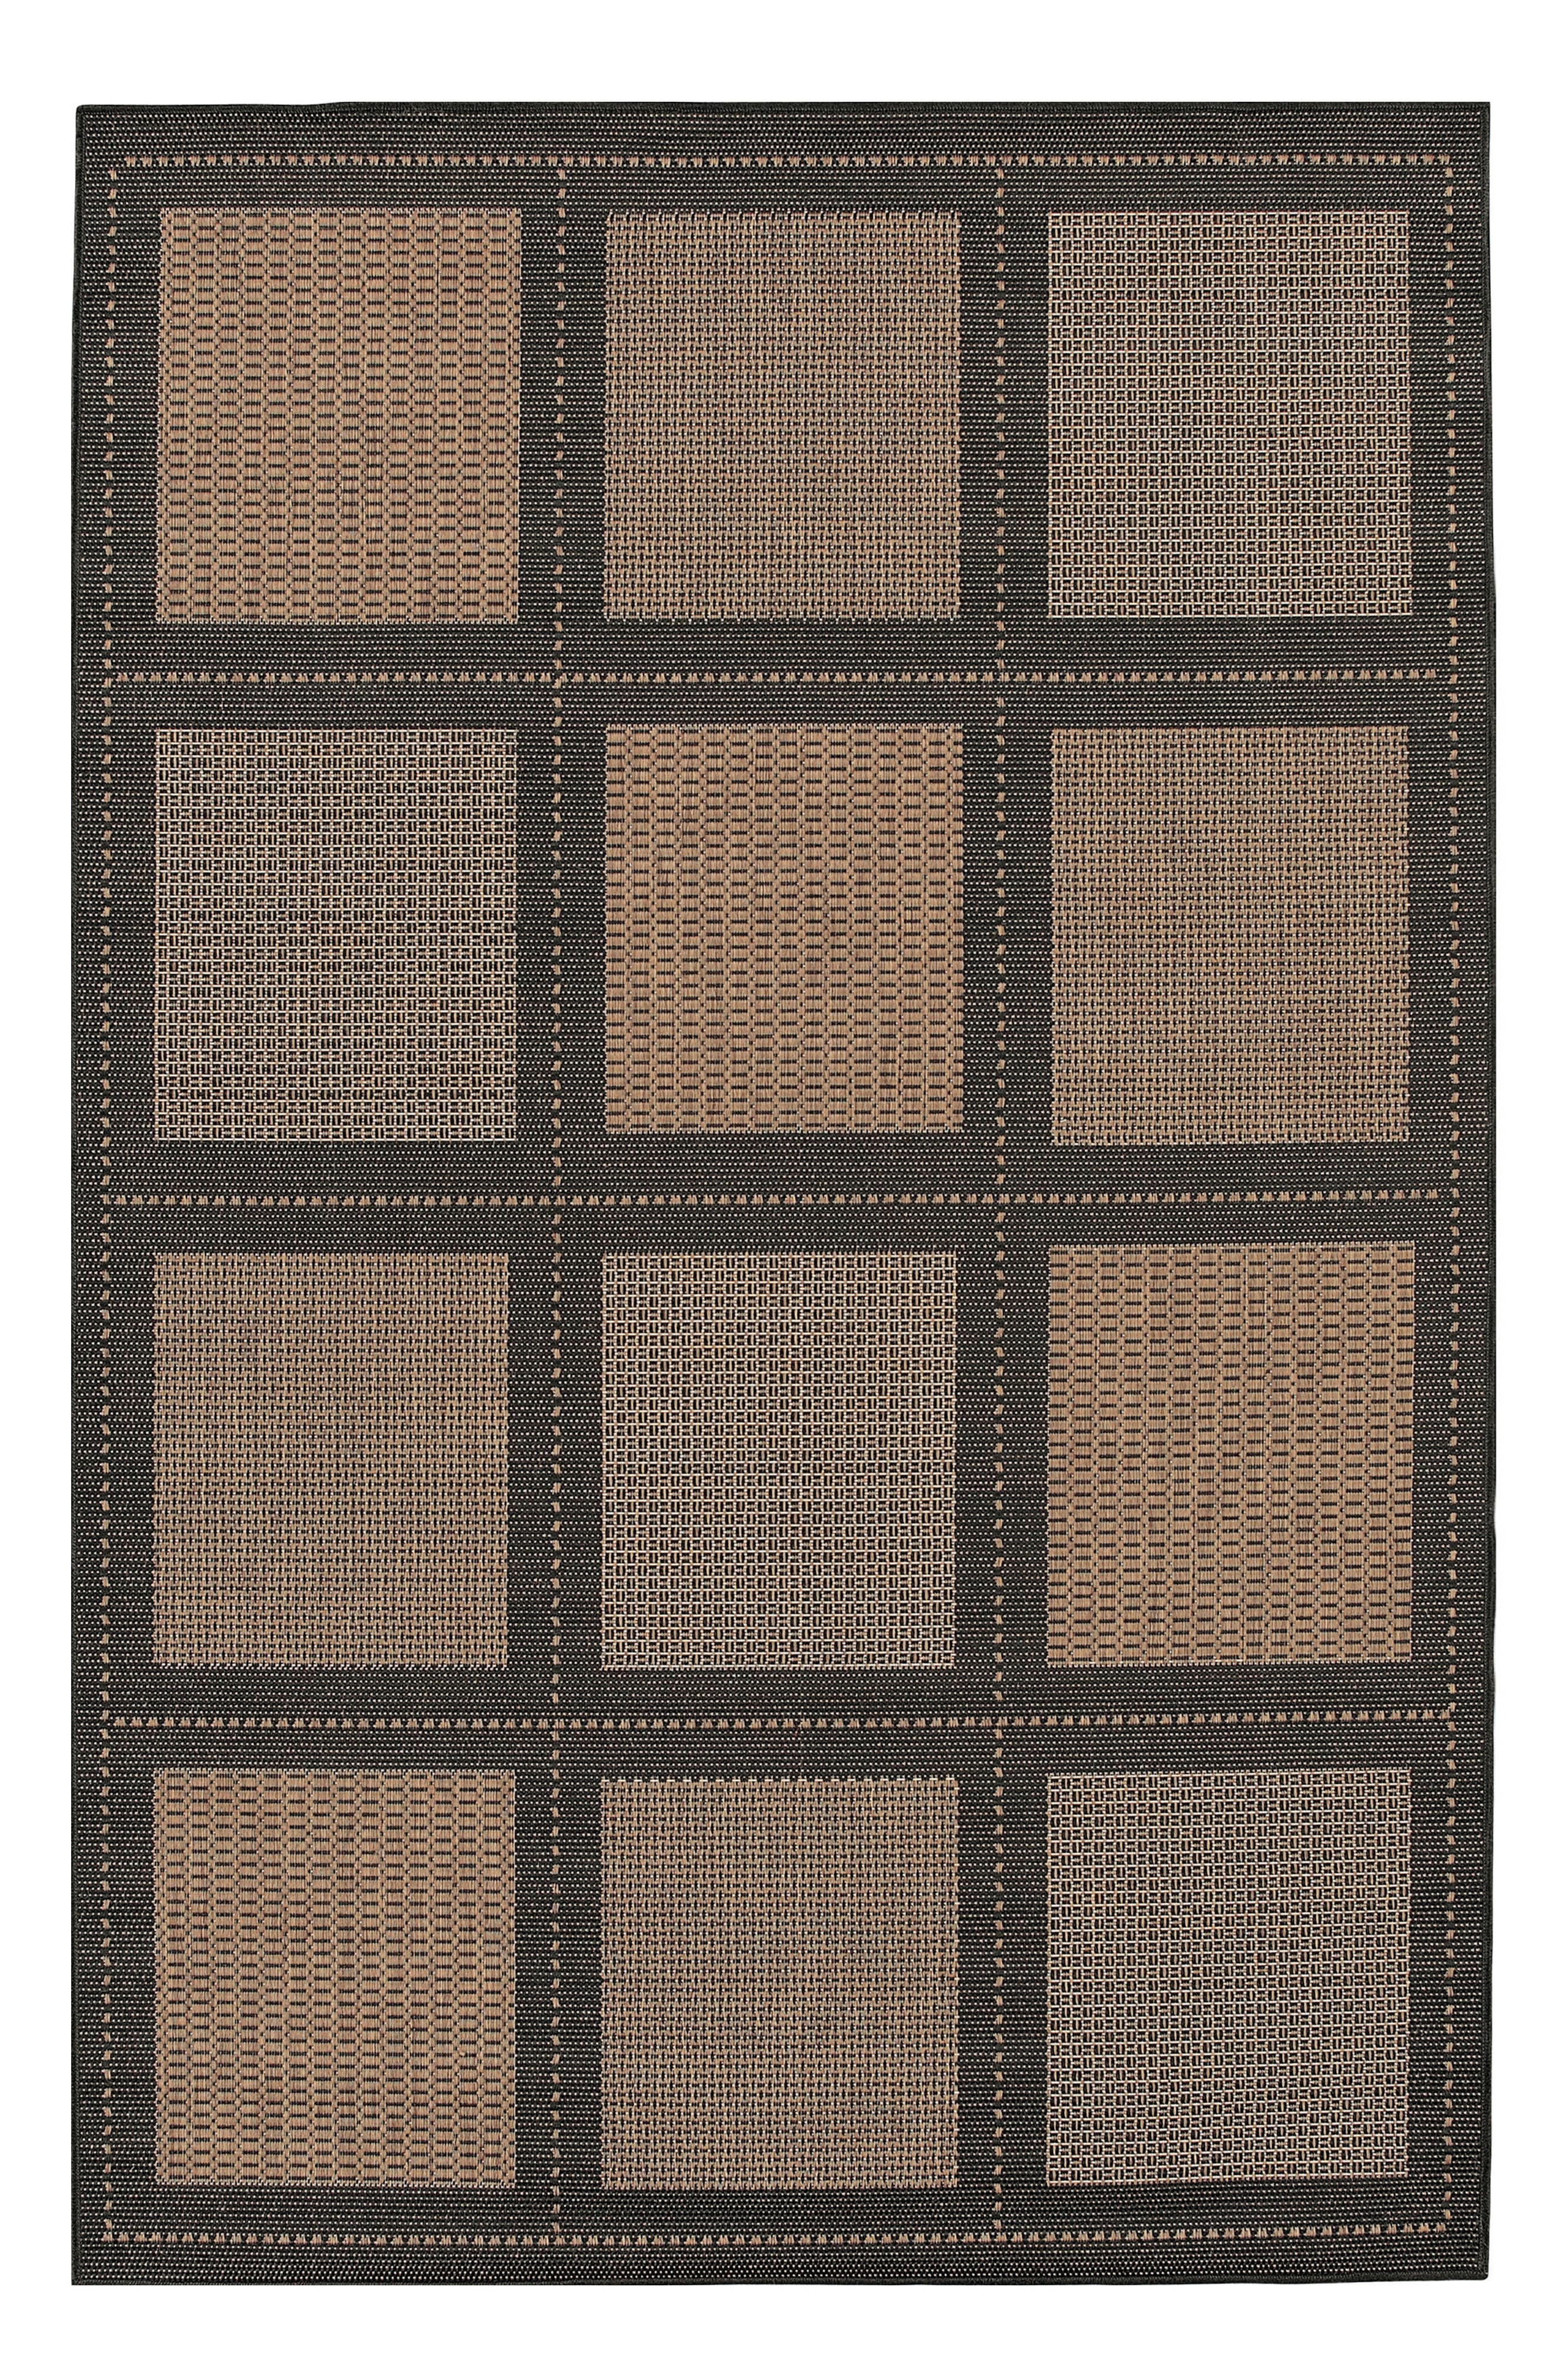 A bold check pattern lends standout style to a versatile rug power-loomed in fade-resistant polypropylene, making it great for high-traffic areas both inside and outside. Style Name: Couristan Reeife Summit Indoor/outdoor Rug. Style Number: 5368550. Available in stores.